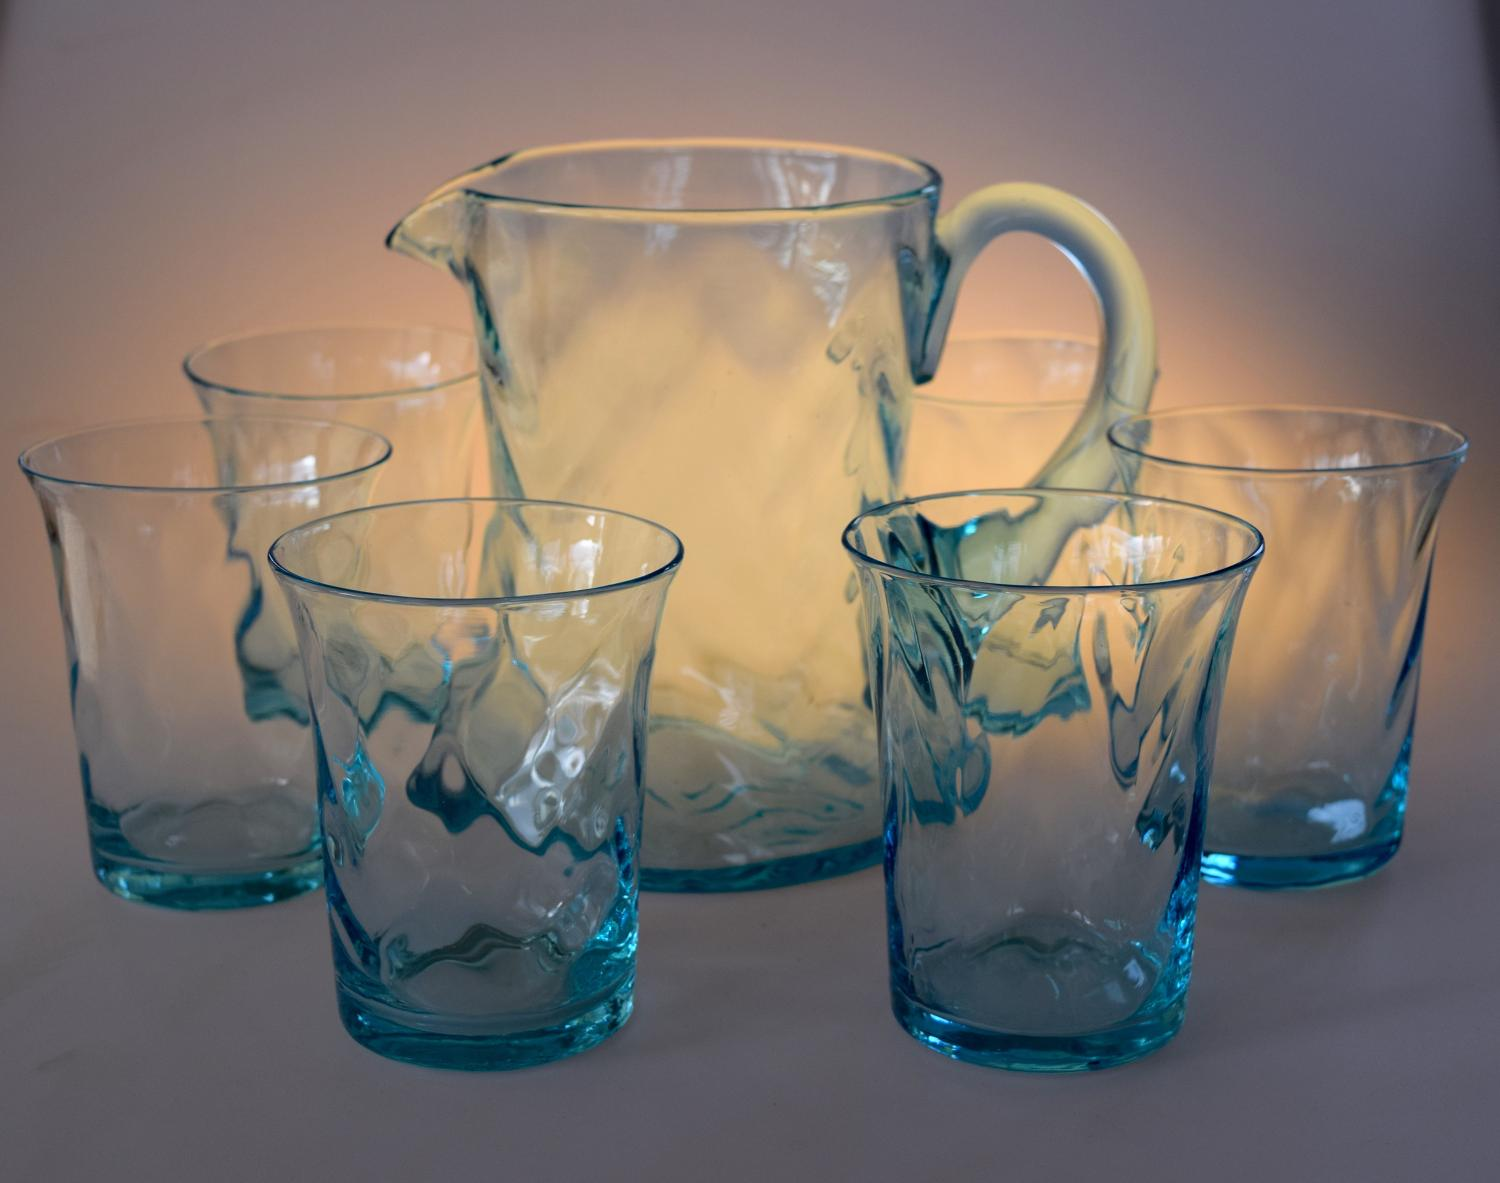 Set of jug and glasses